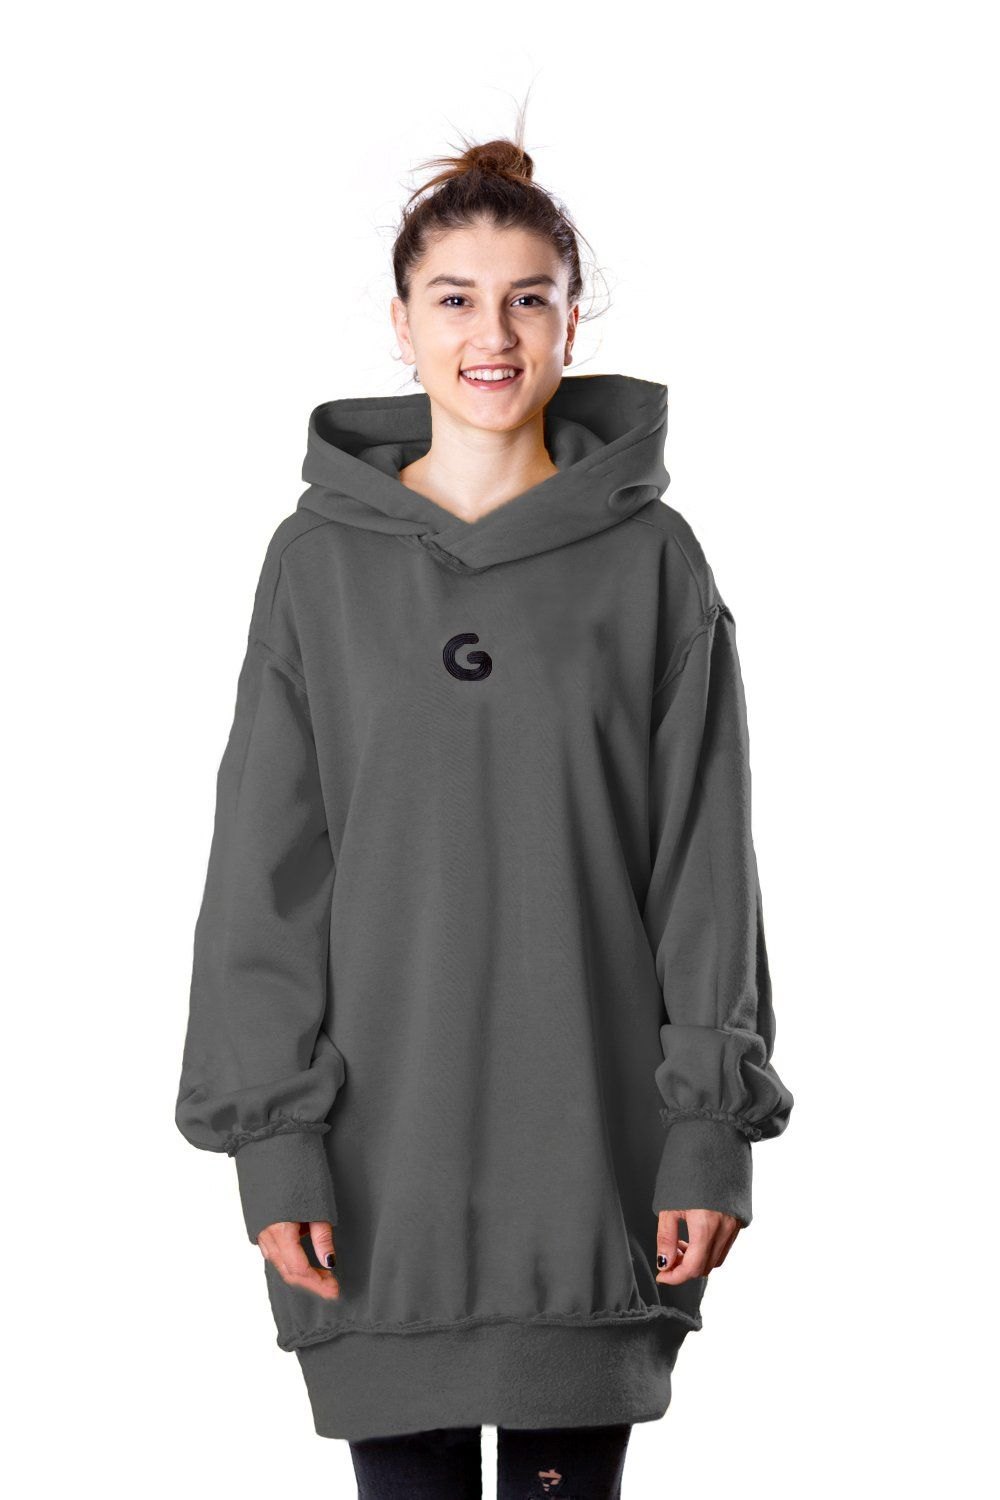 TheG Fresh Oversize Hoody Woman // washed gray